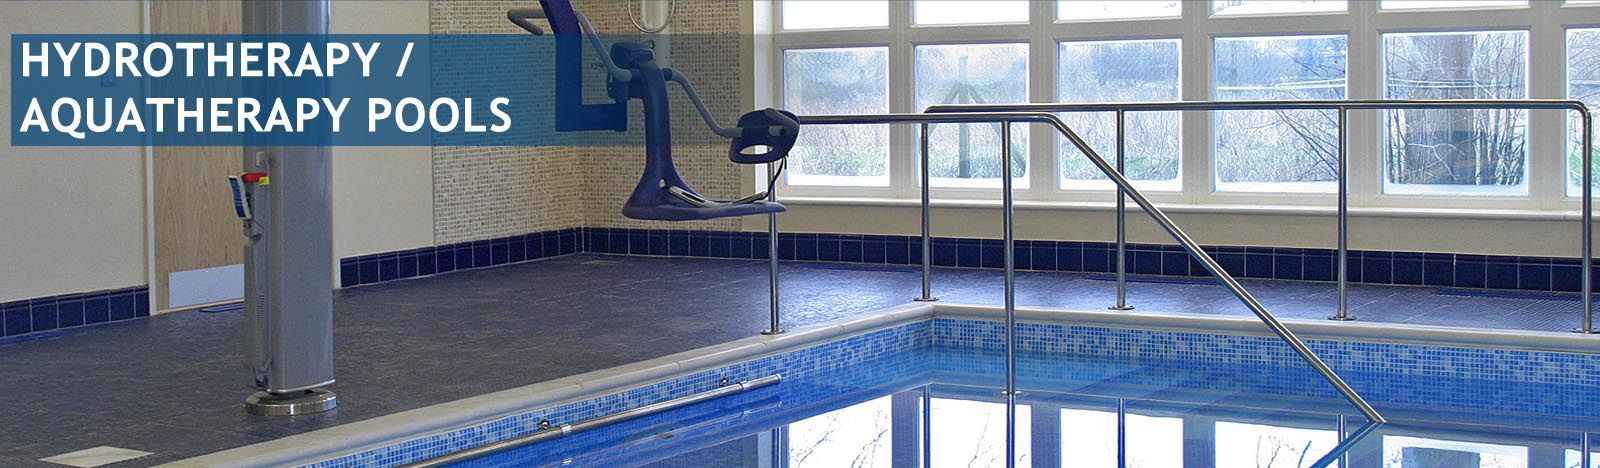 hydrotherapy pools installers wales